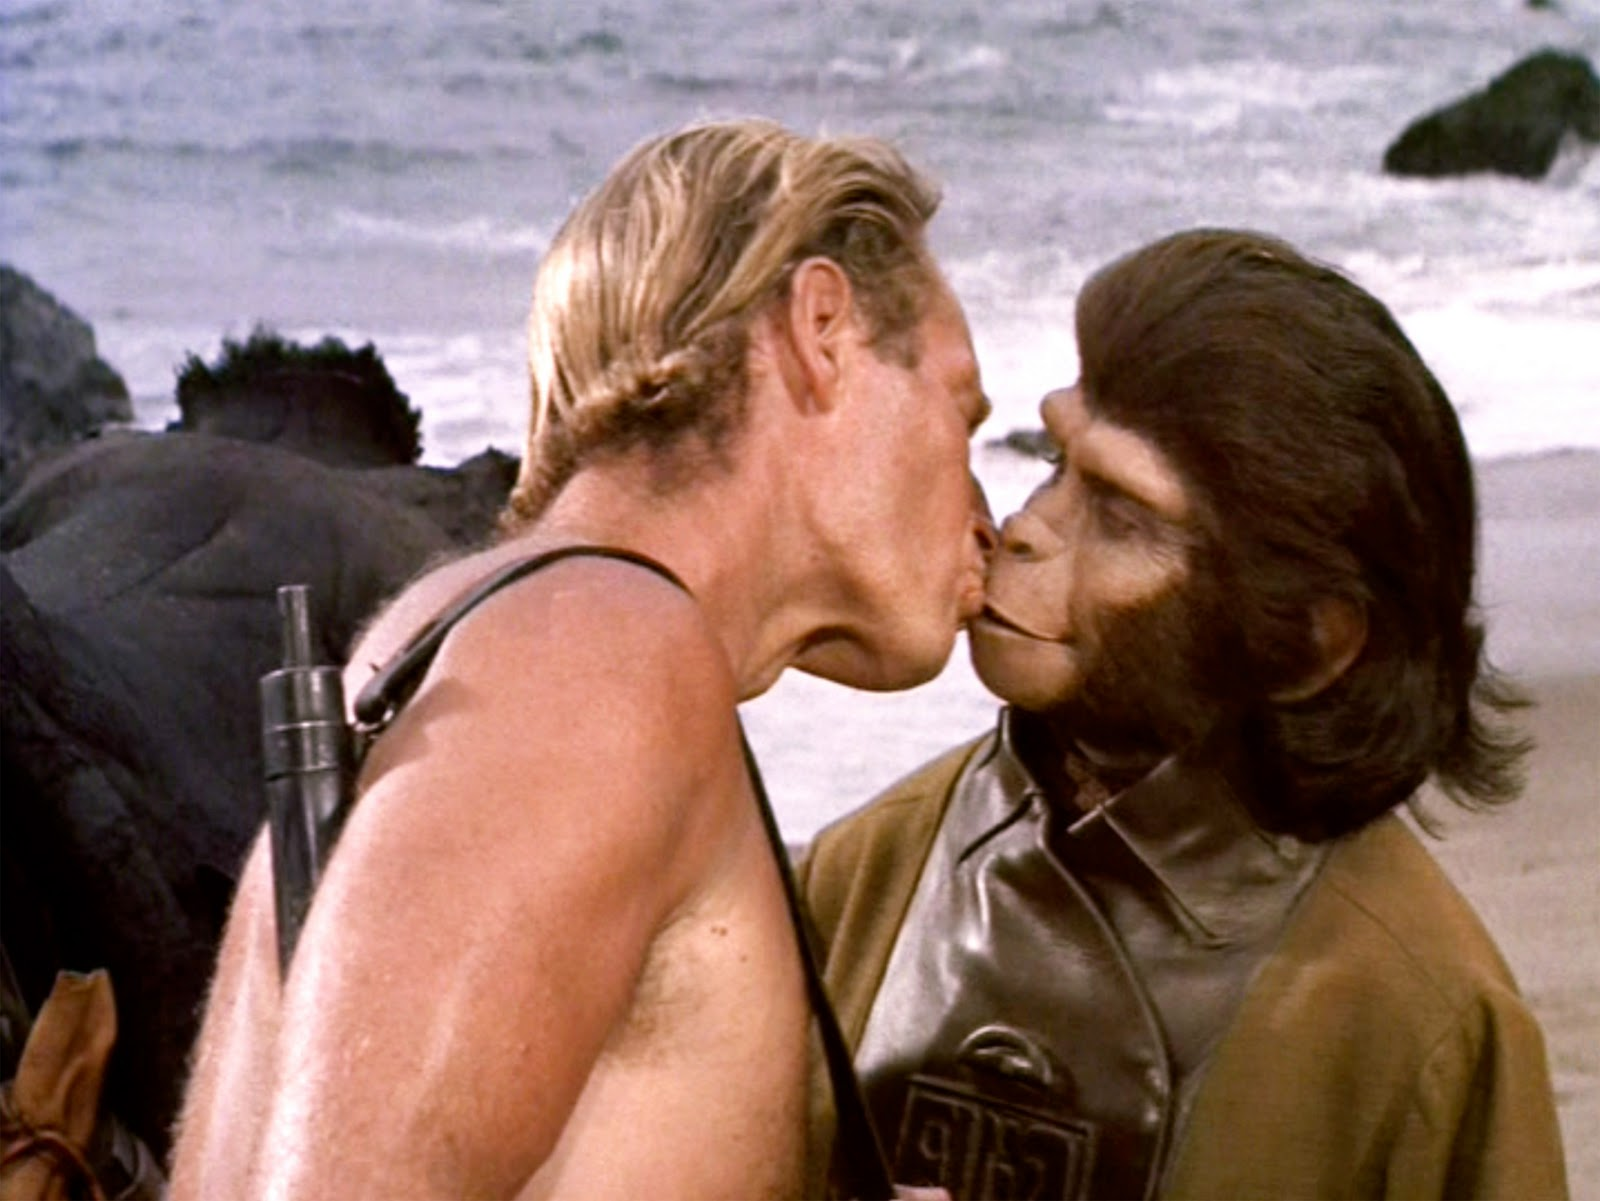 That's some hot monkey lovin' right there.